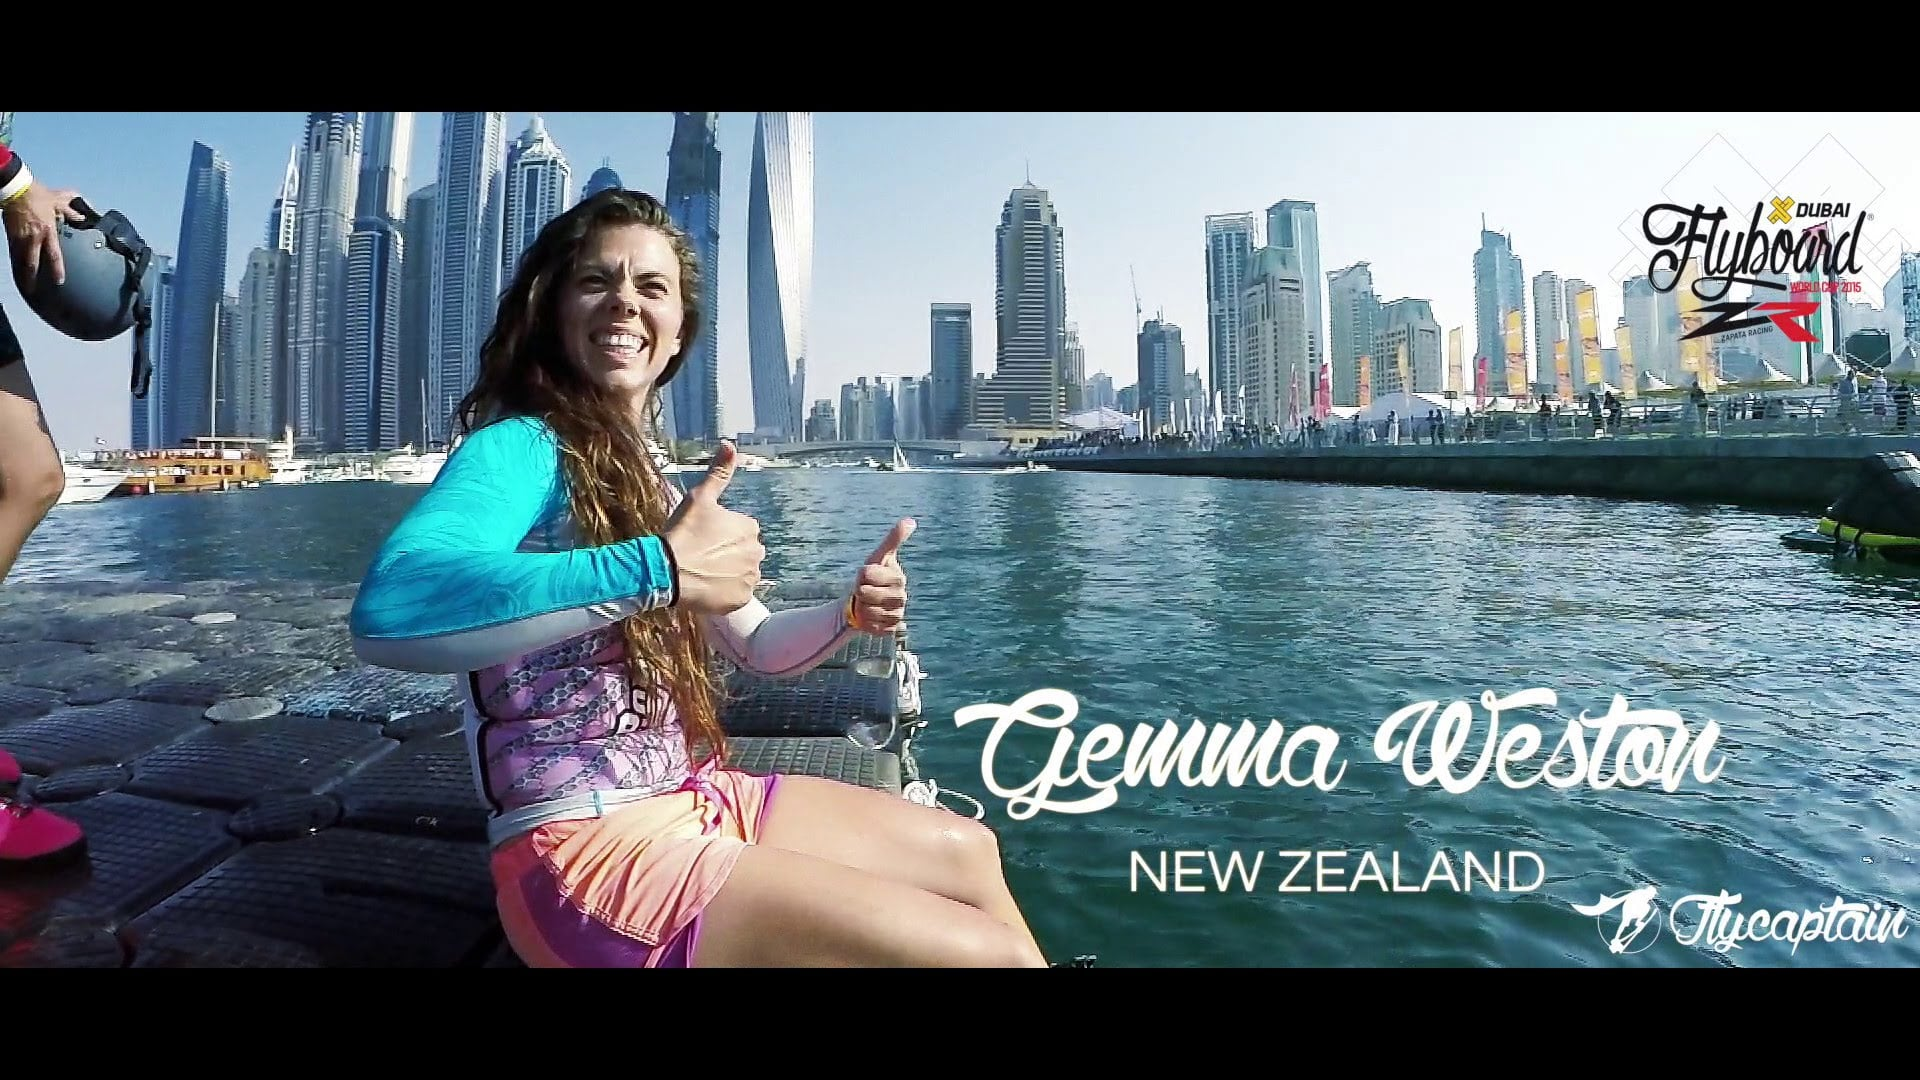 Womens world flyboard champ! Flyboard discount for Licence to Boat, Sunshine Coast customers